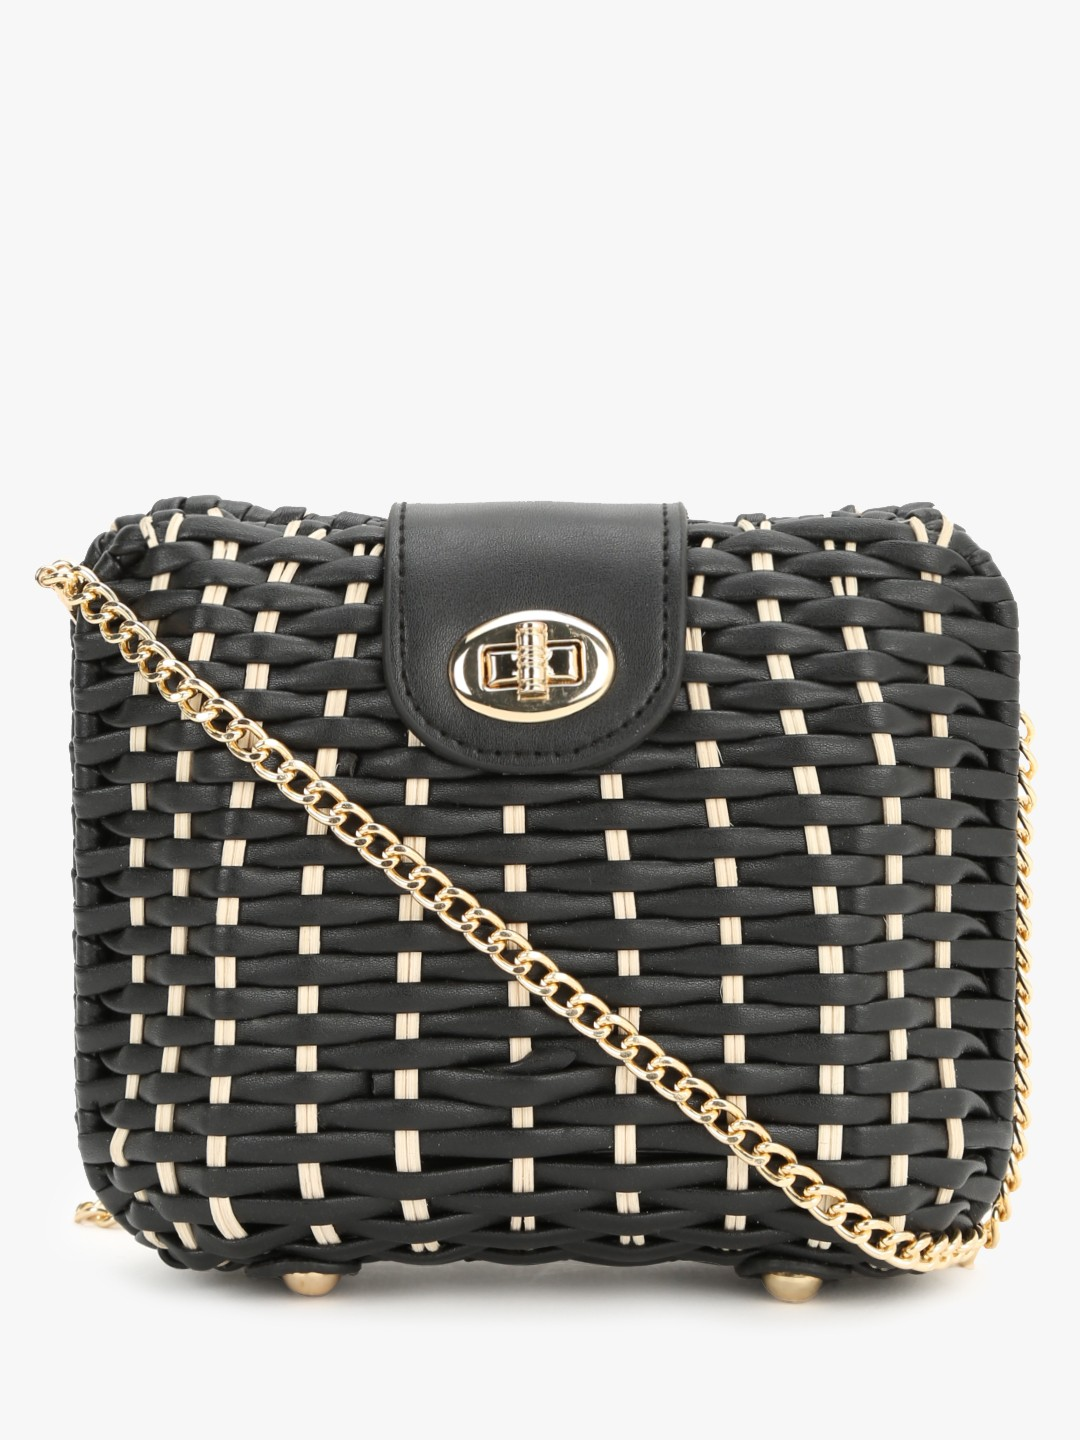 New Look Black Woven Straw Effect Crossbody Sling Bag 1